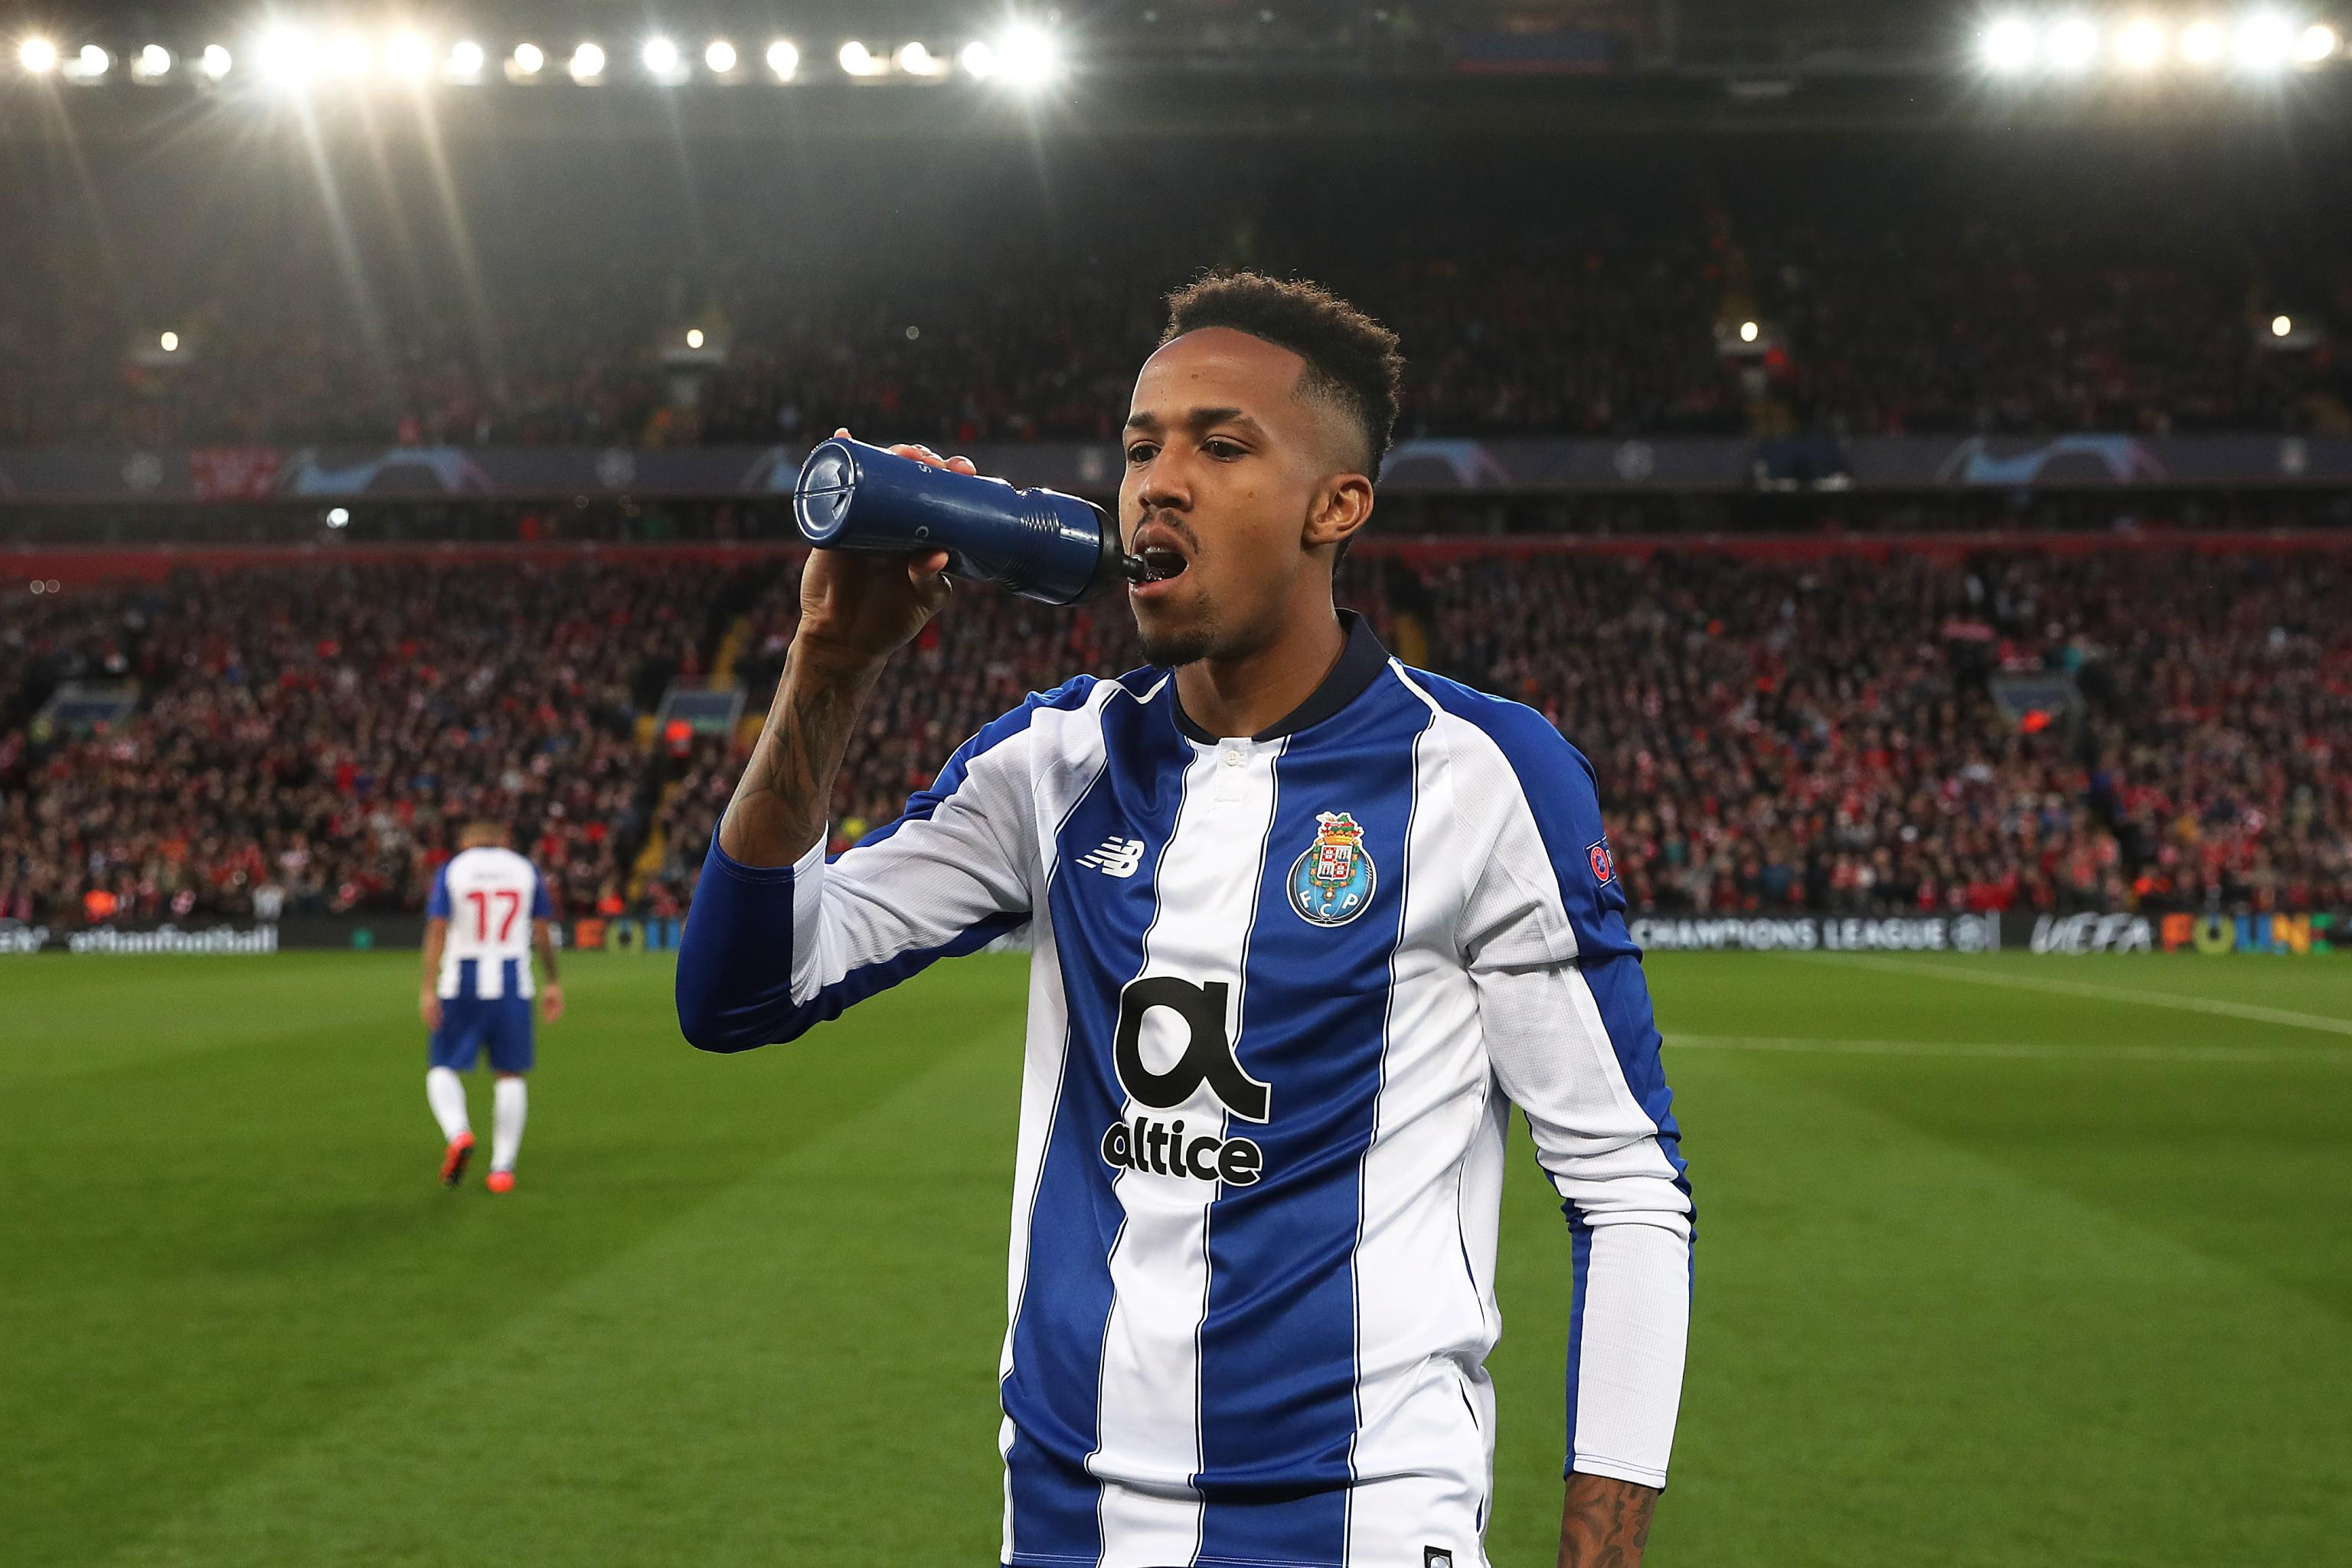 Eder Militao: Porto's Quiet Golden Boy Hoping to Make a Big Noise at Real Madrid | Bleacher Report | Latest News, Videos and Highlights